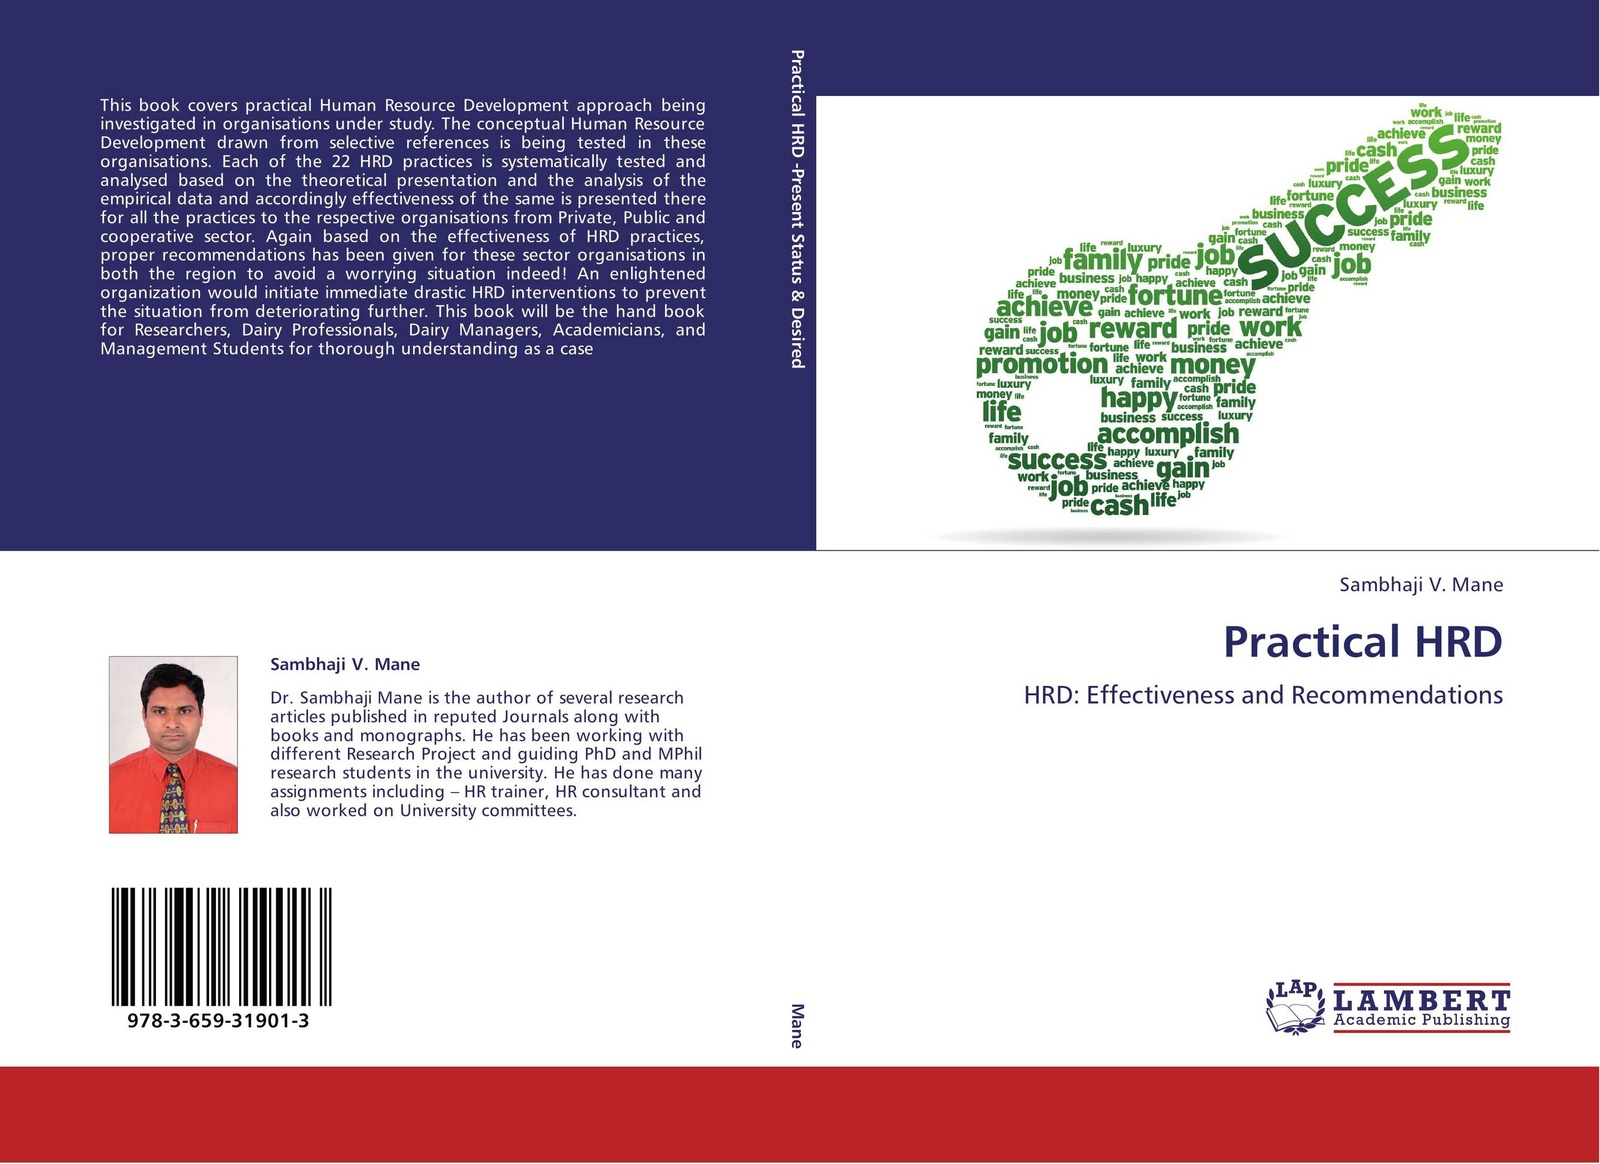 Sambhaji V. Mane Practical HRD knowledge management practices in public organization a comparative and exploratory study with private organization